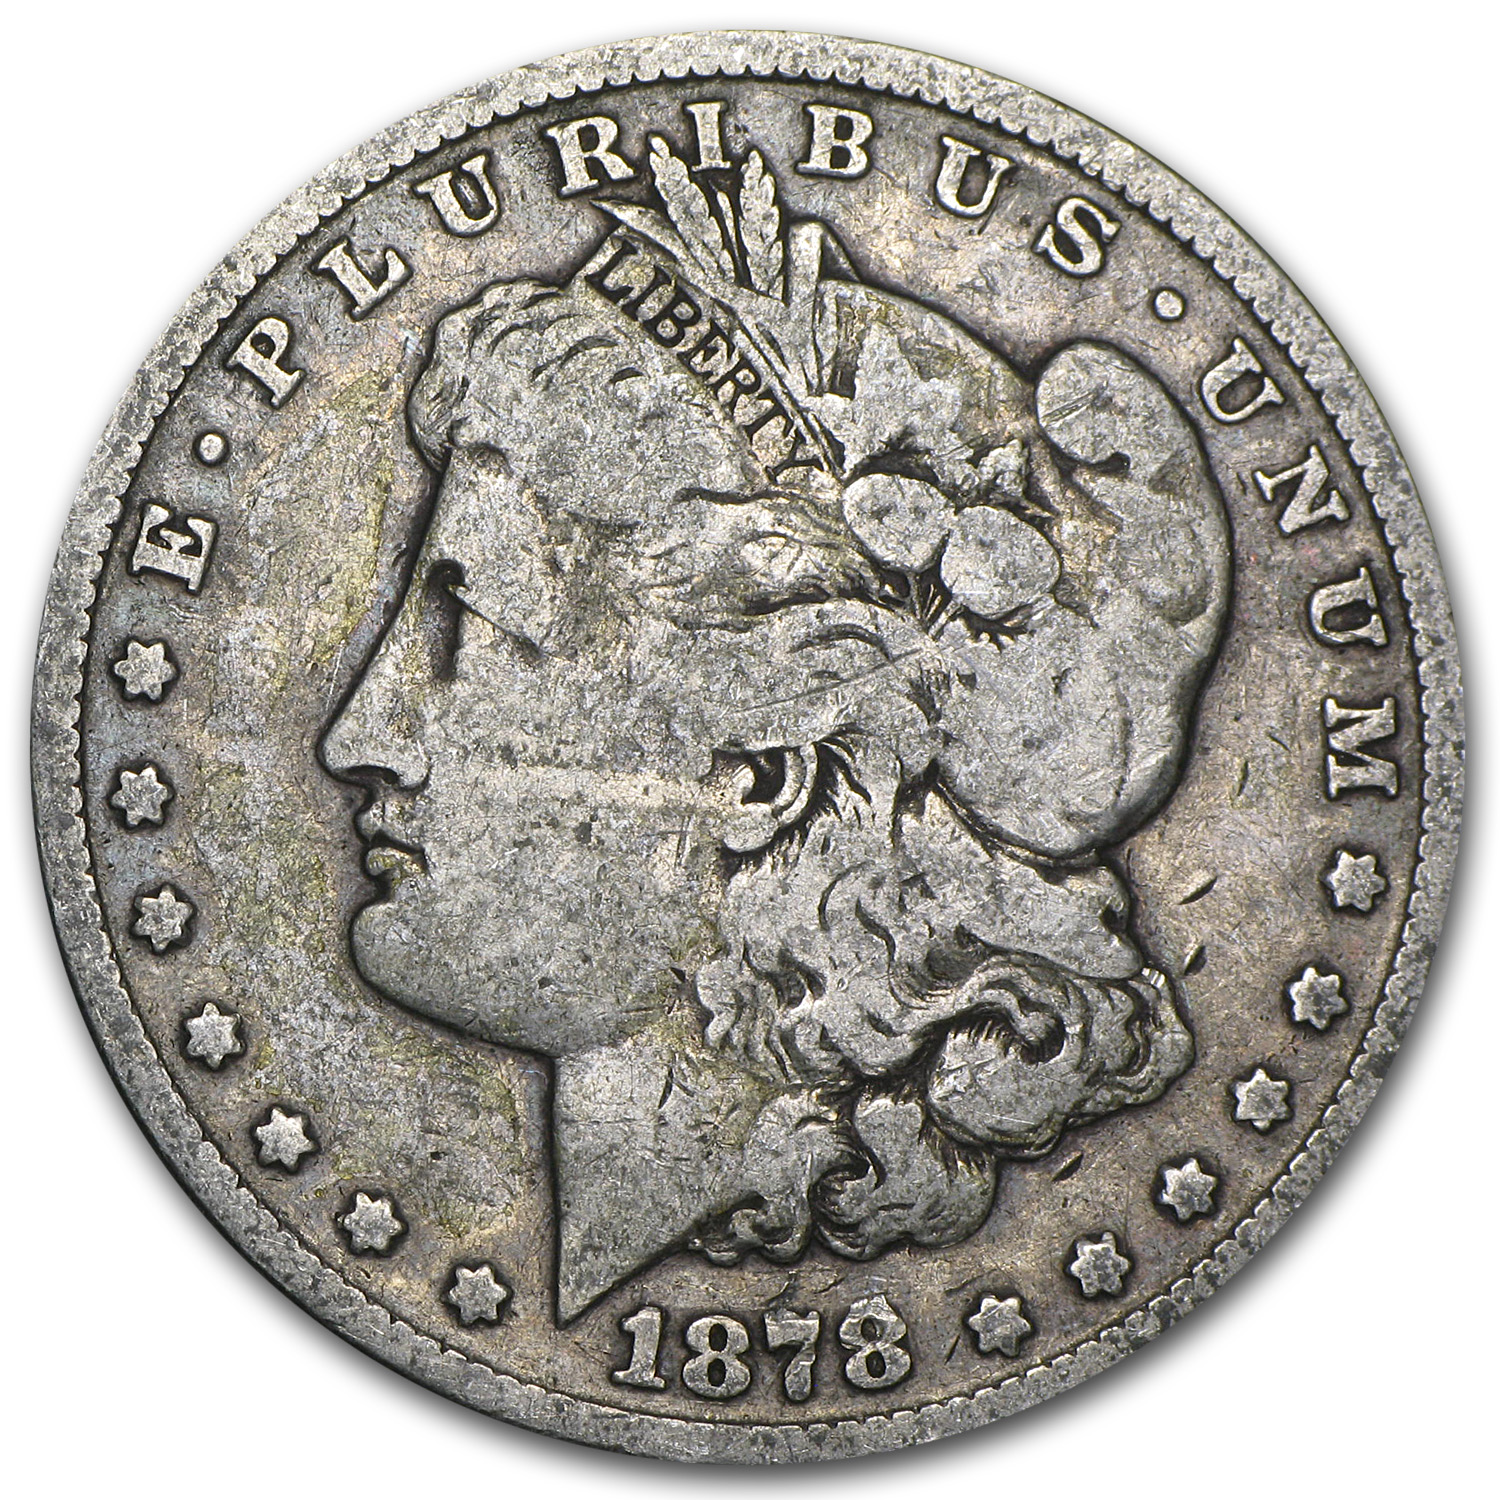 1878-CC Morgan Dollar - Very Good